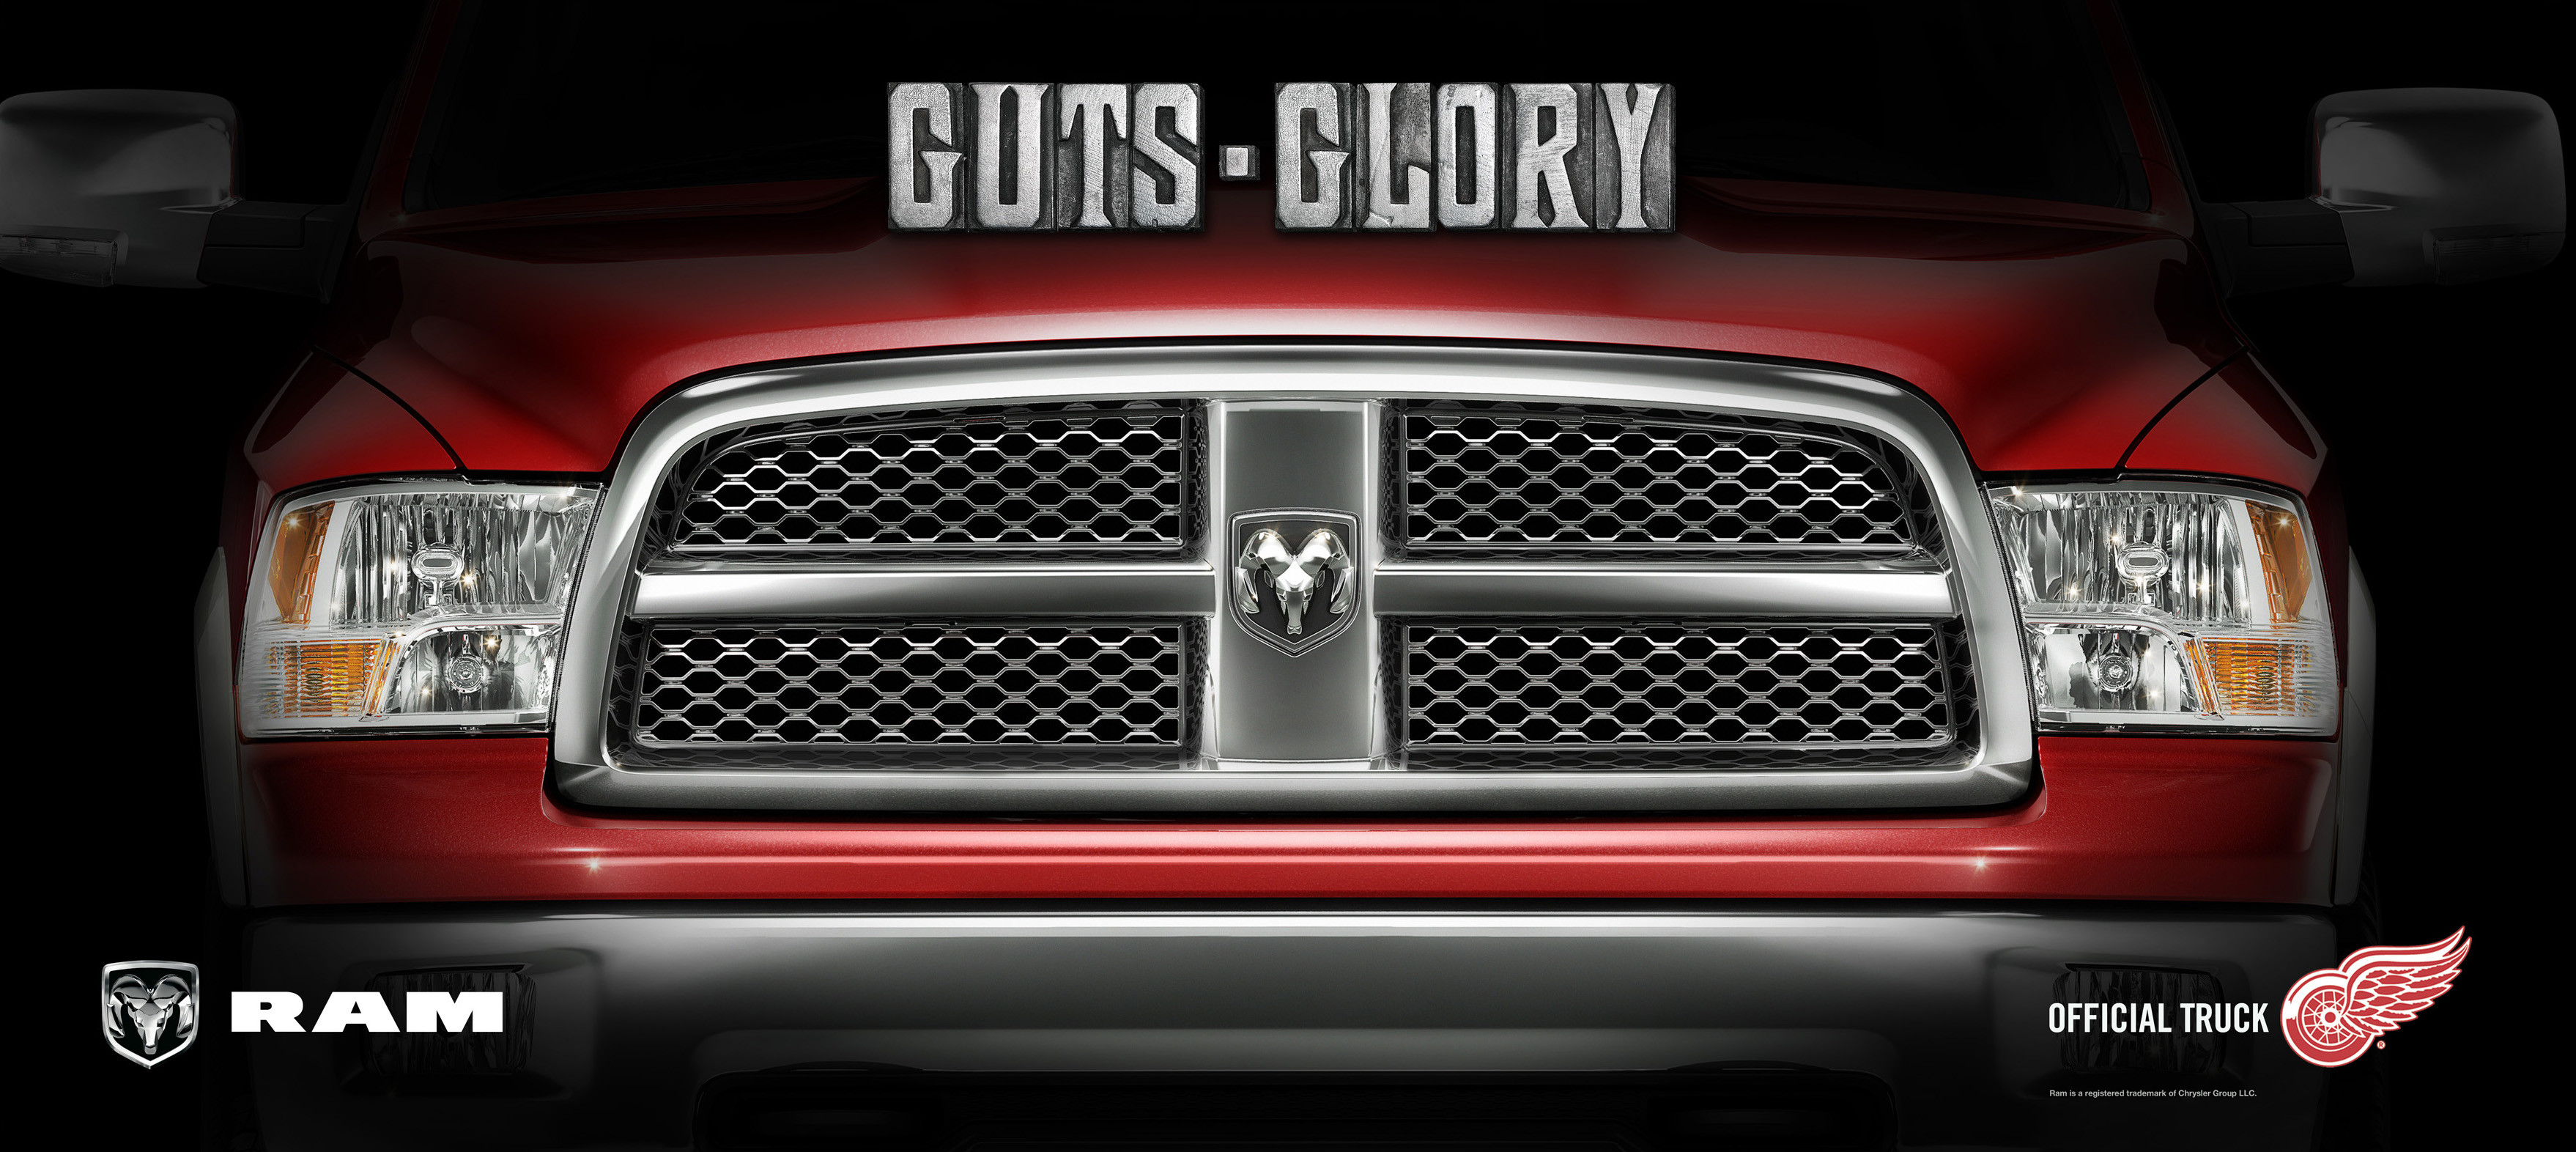 50 Dodge Ram Logo Wallpaper Hd Android Iphone Desktop Hd Backgrounds Wallpapers 1080p 4k 3516x1572 2020